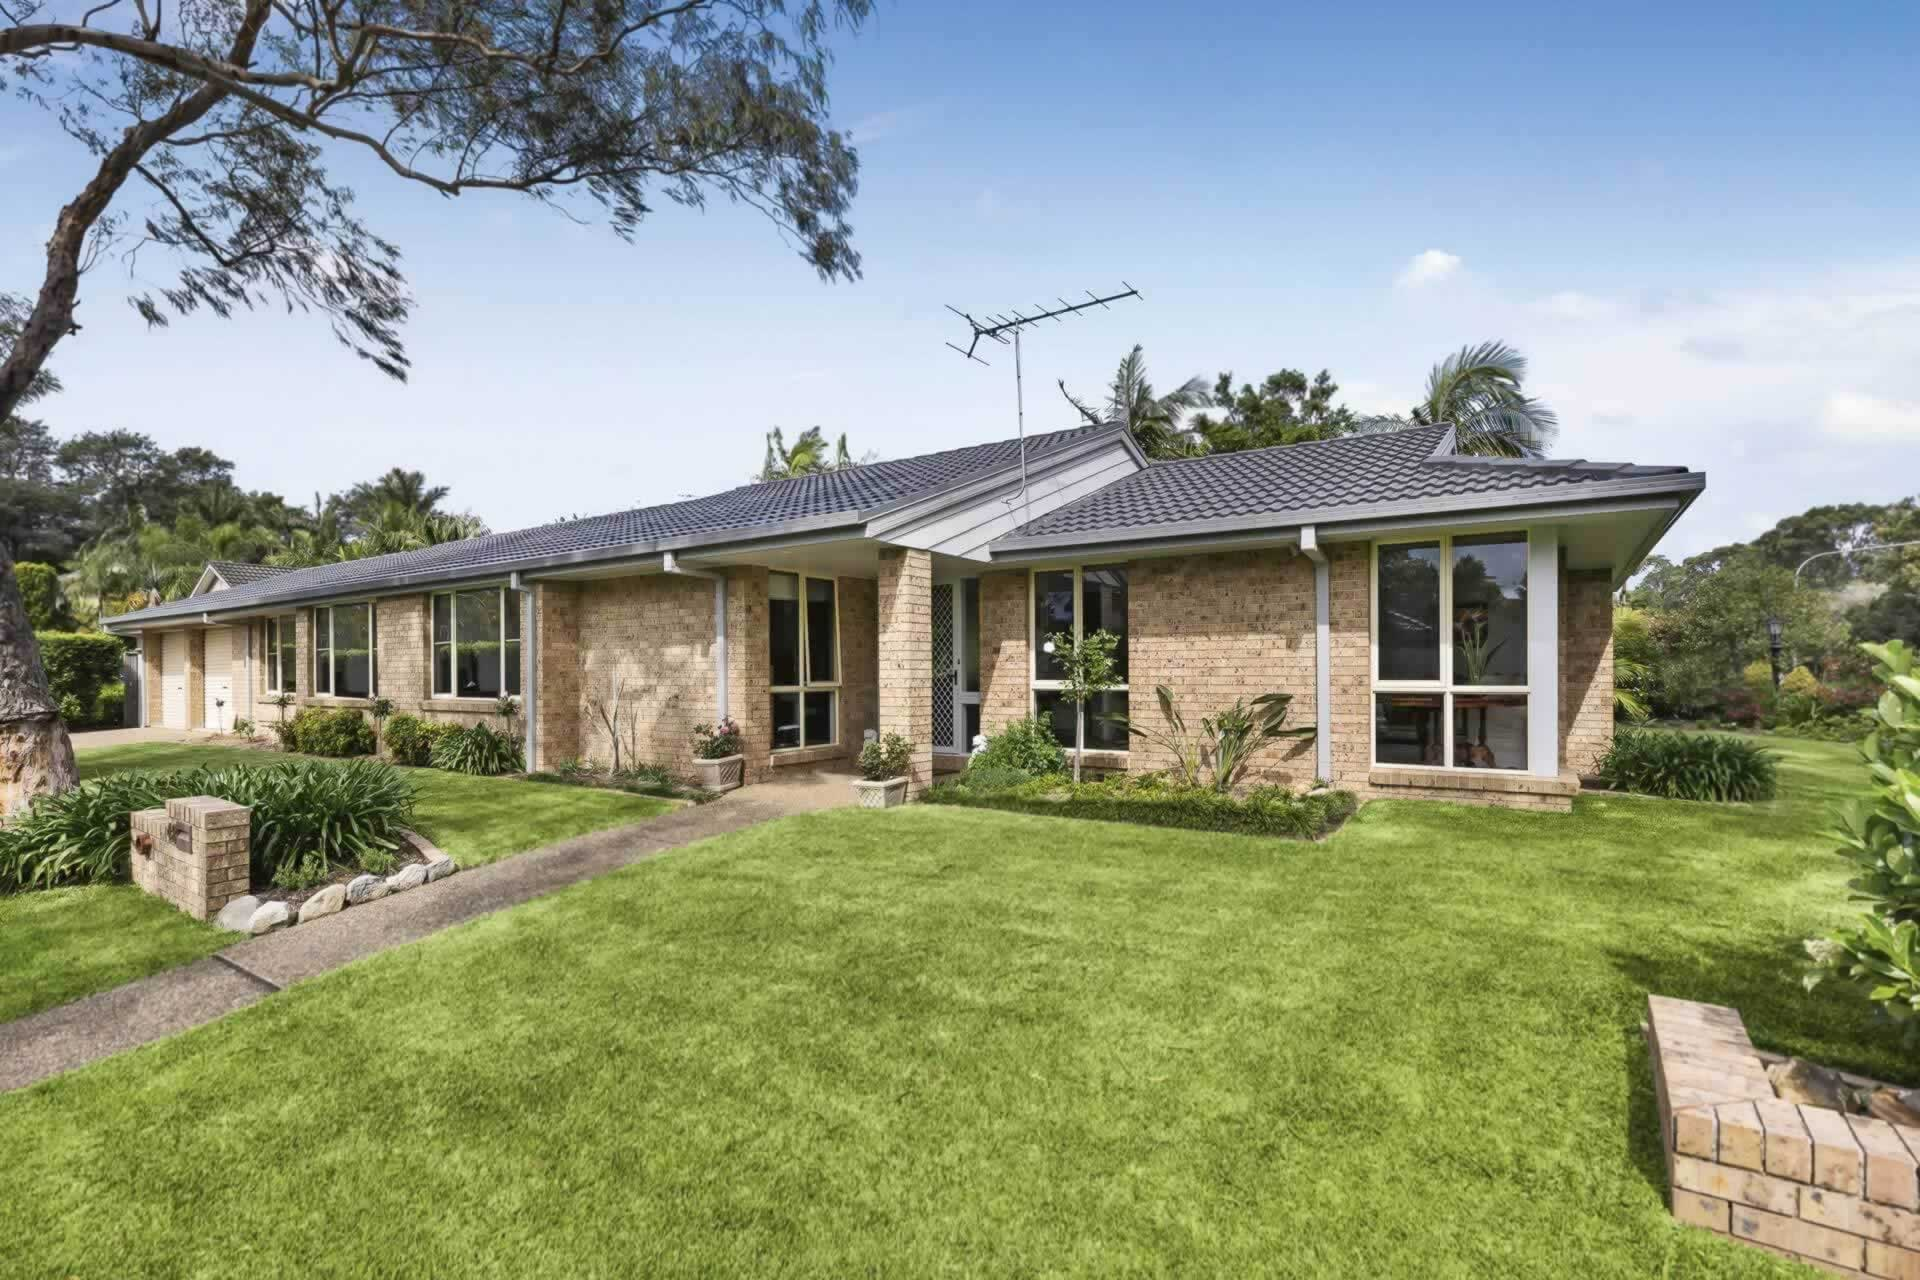 73-Wentworth-Vaucluse-Sydney-property-for-sale